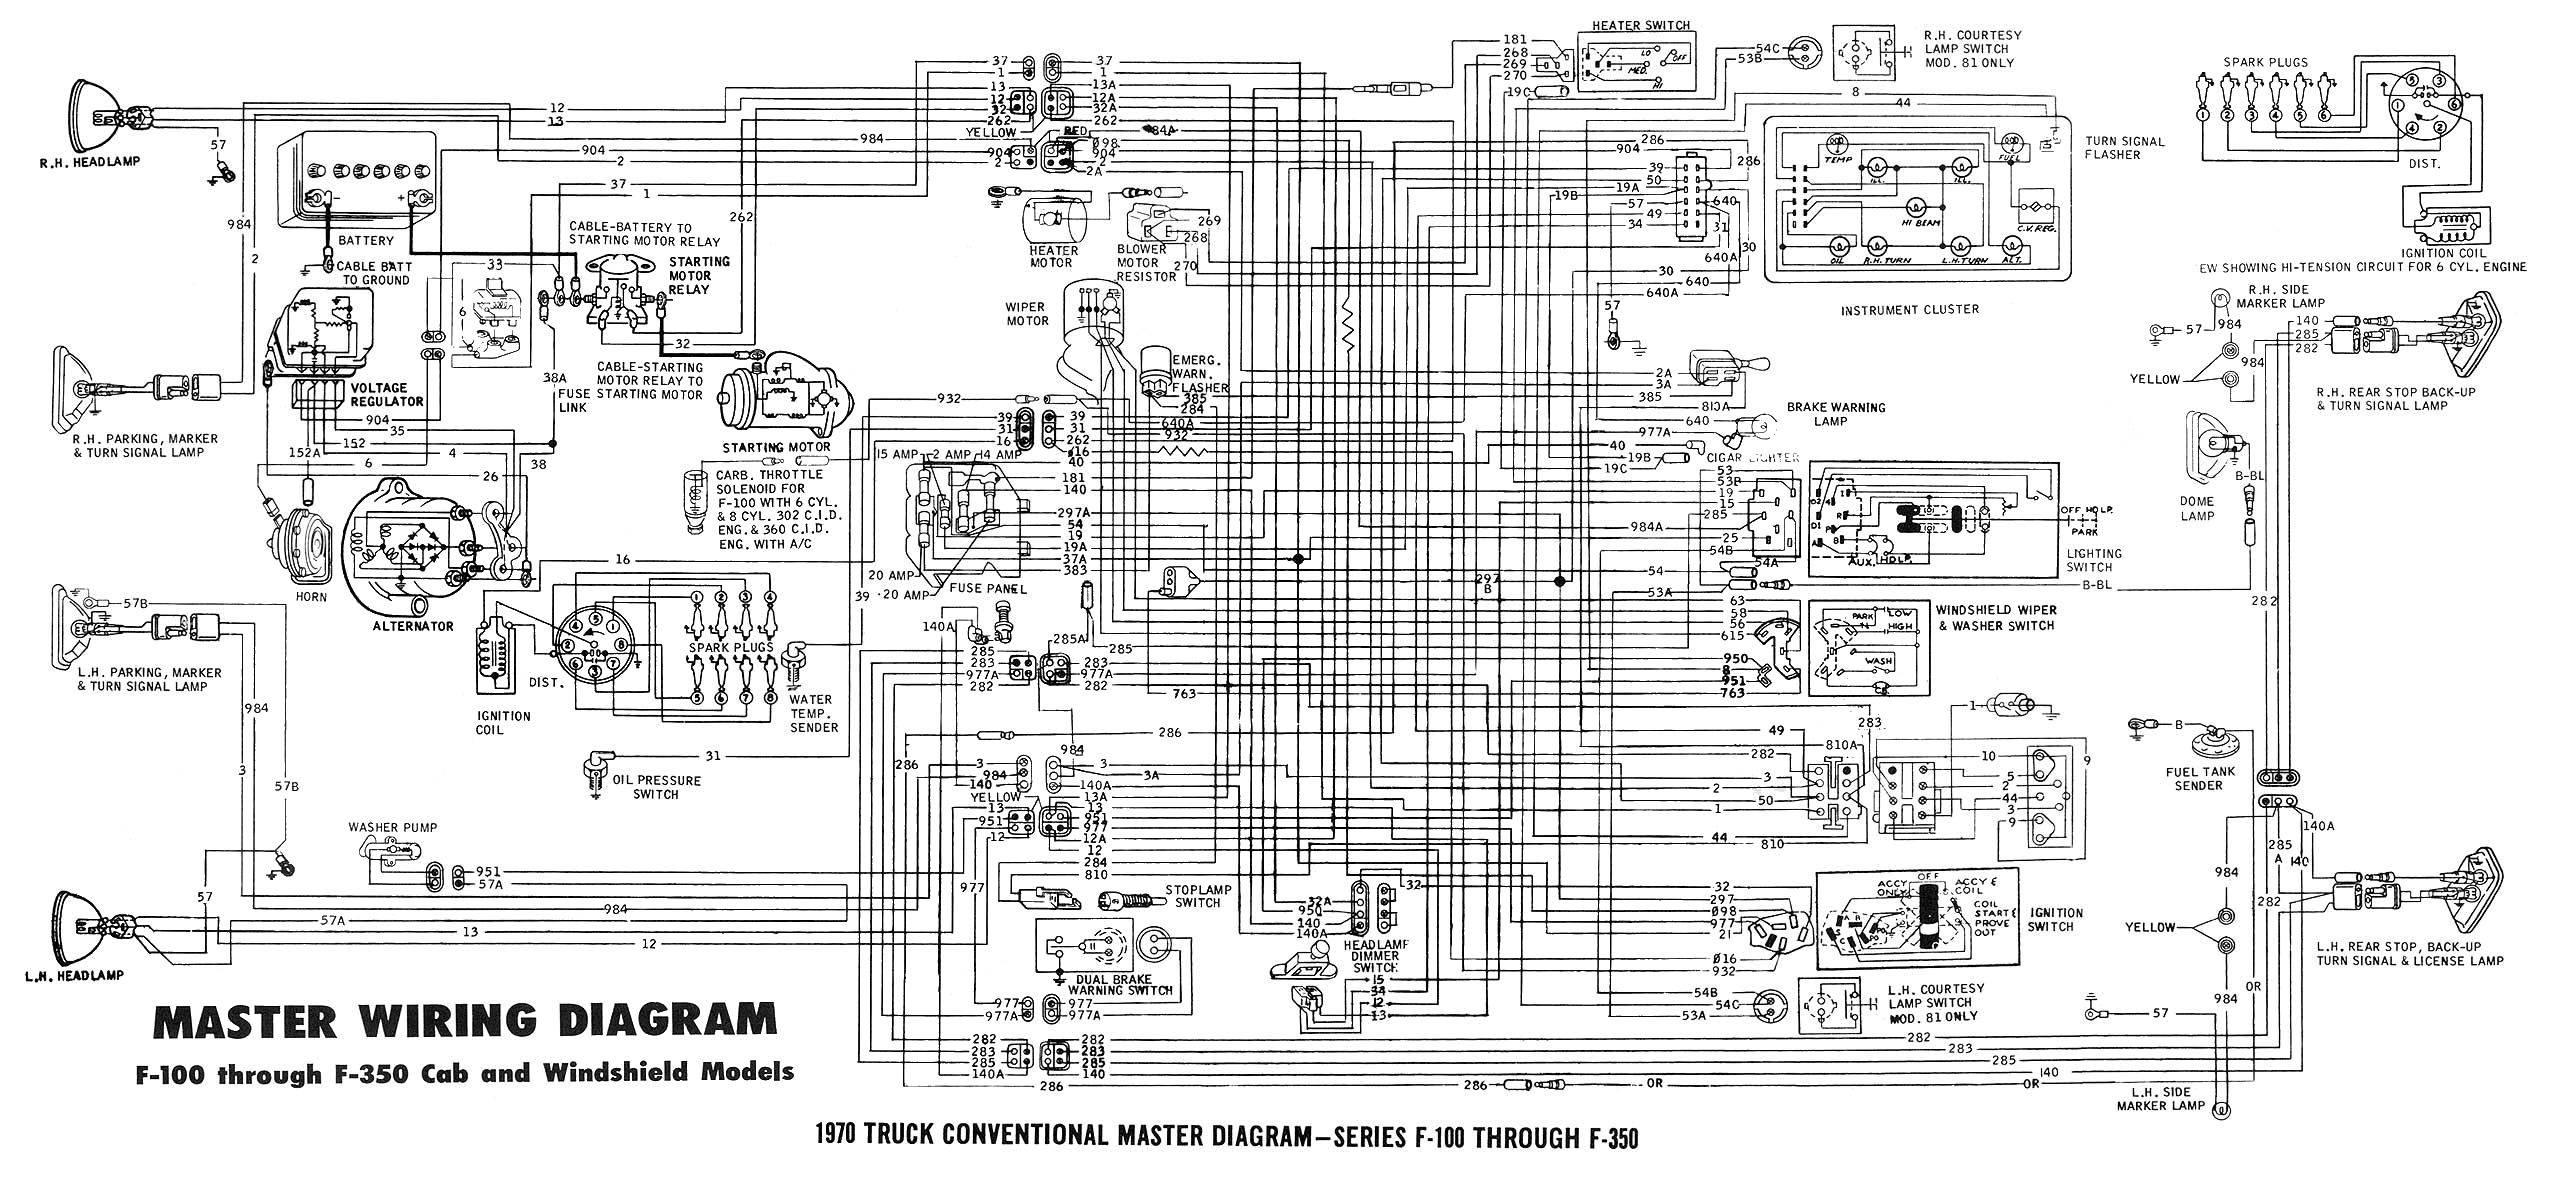 2006 ford f350 wiring diagram 2006 ford f350 wiring diagram 2006 ford f350 wiring diagram ford wiring schematics auto wiring diagram schematic